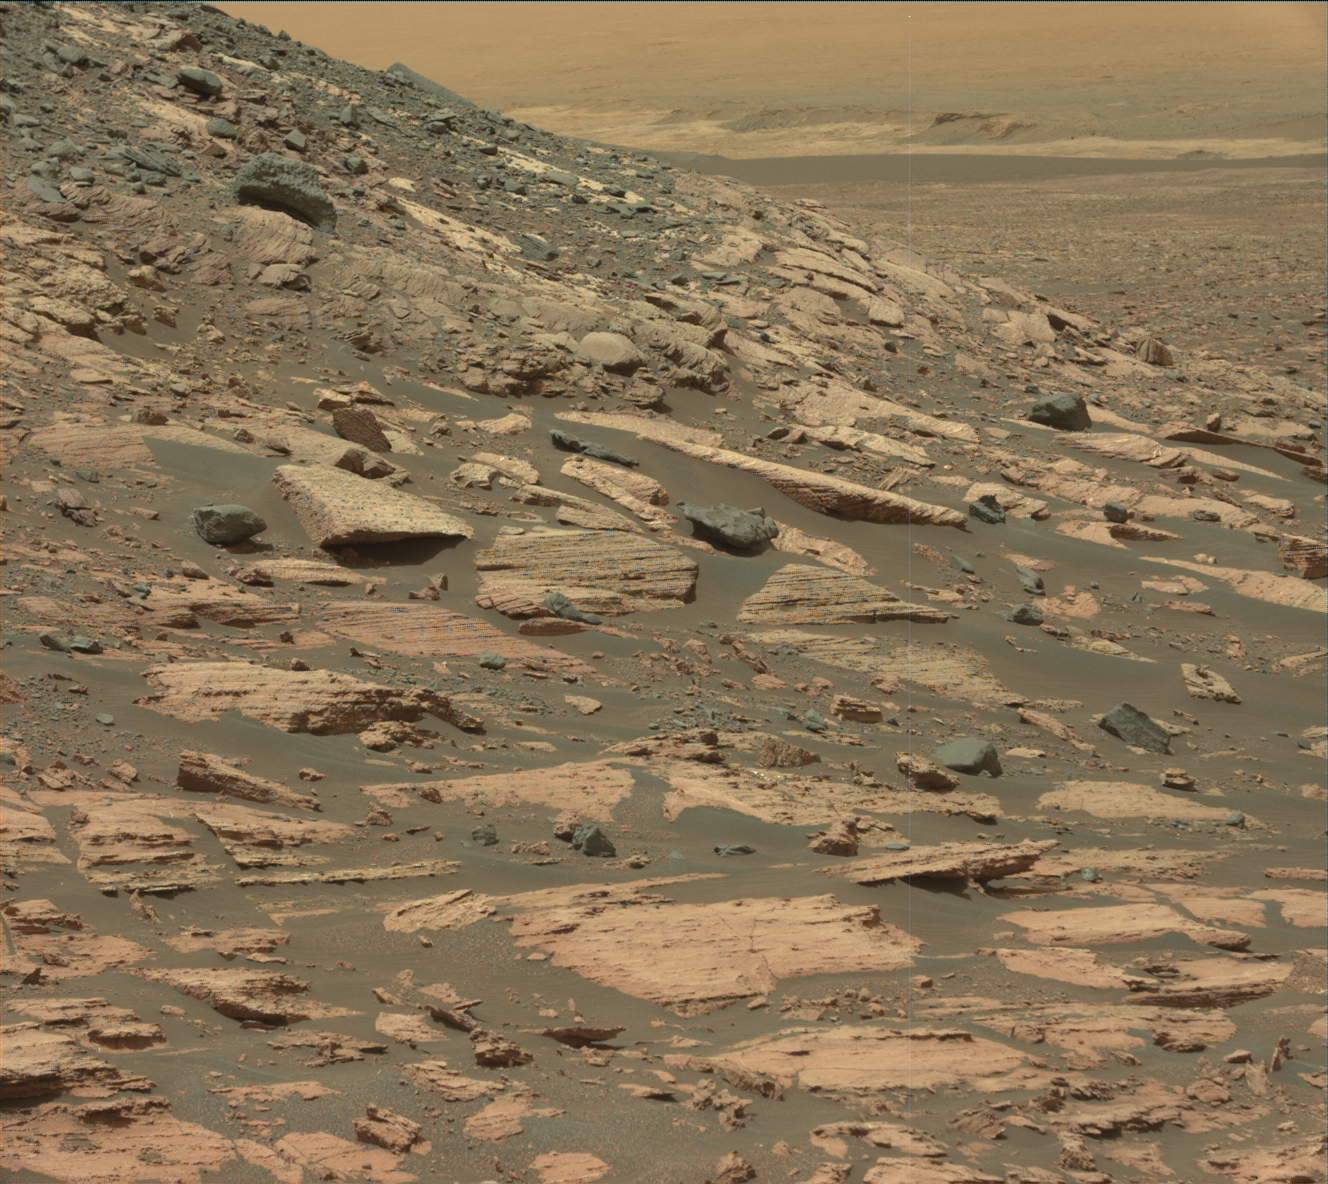 Curiosity rover view of Mars, February 10, 2017